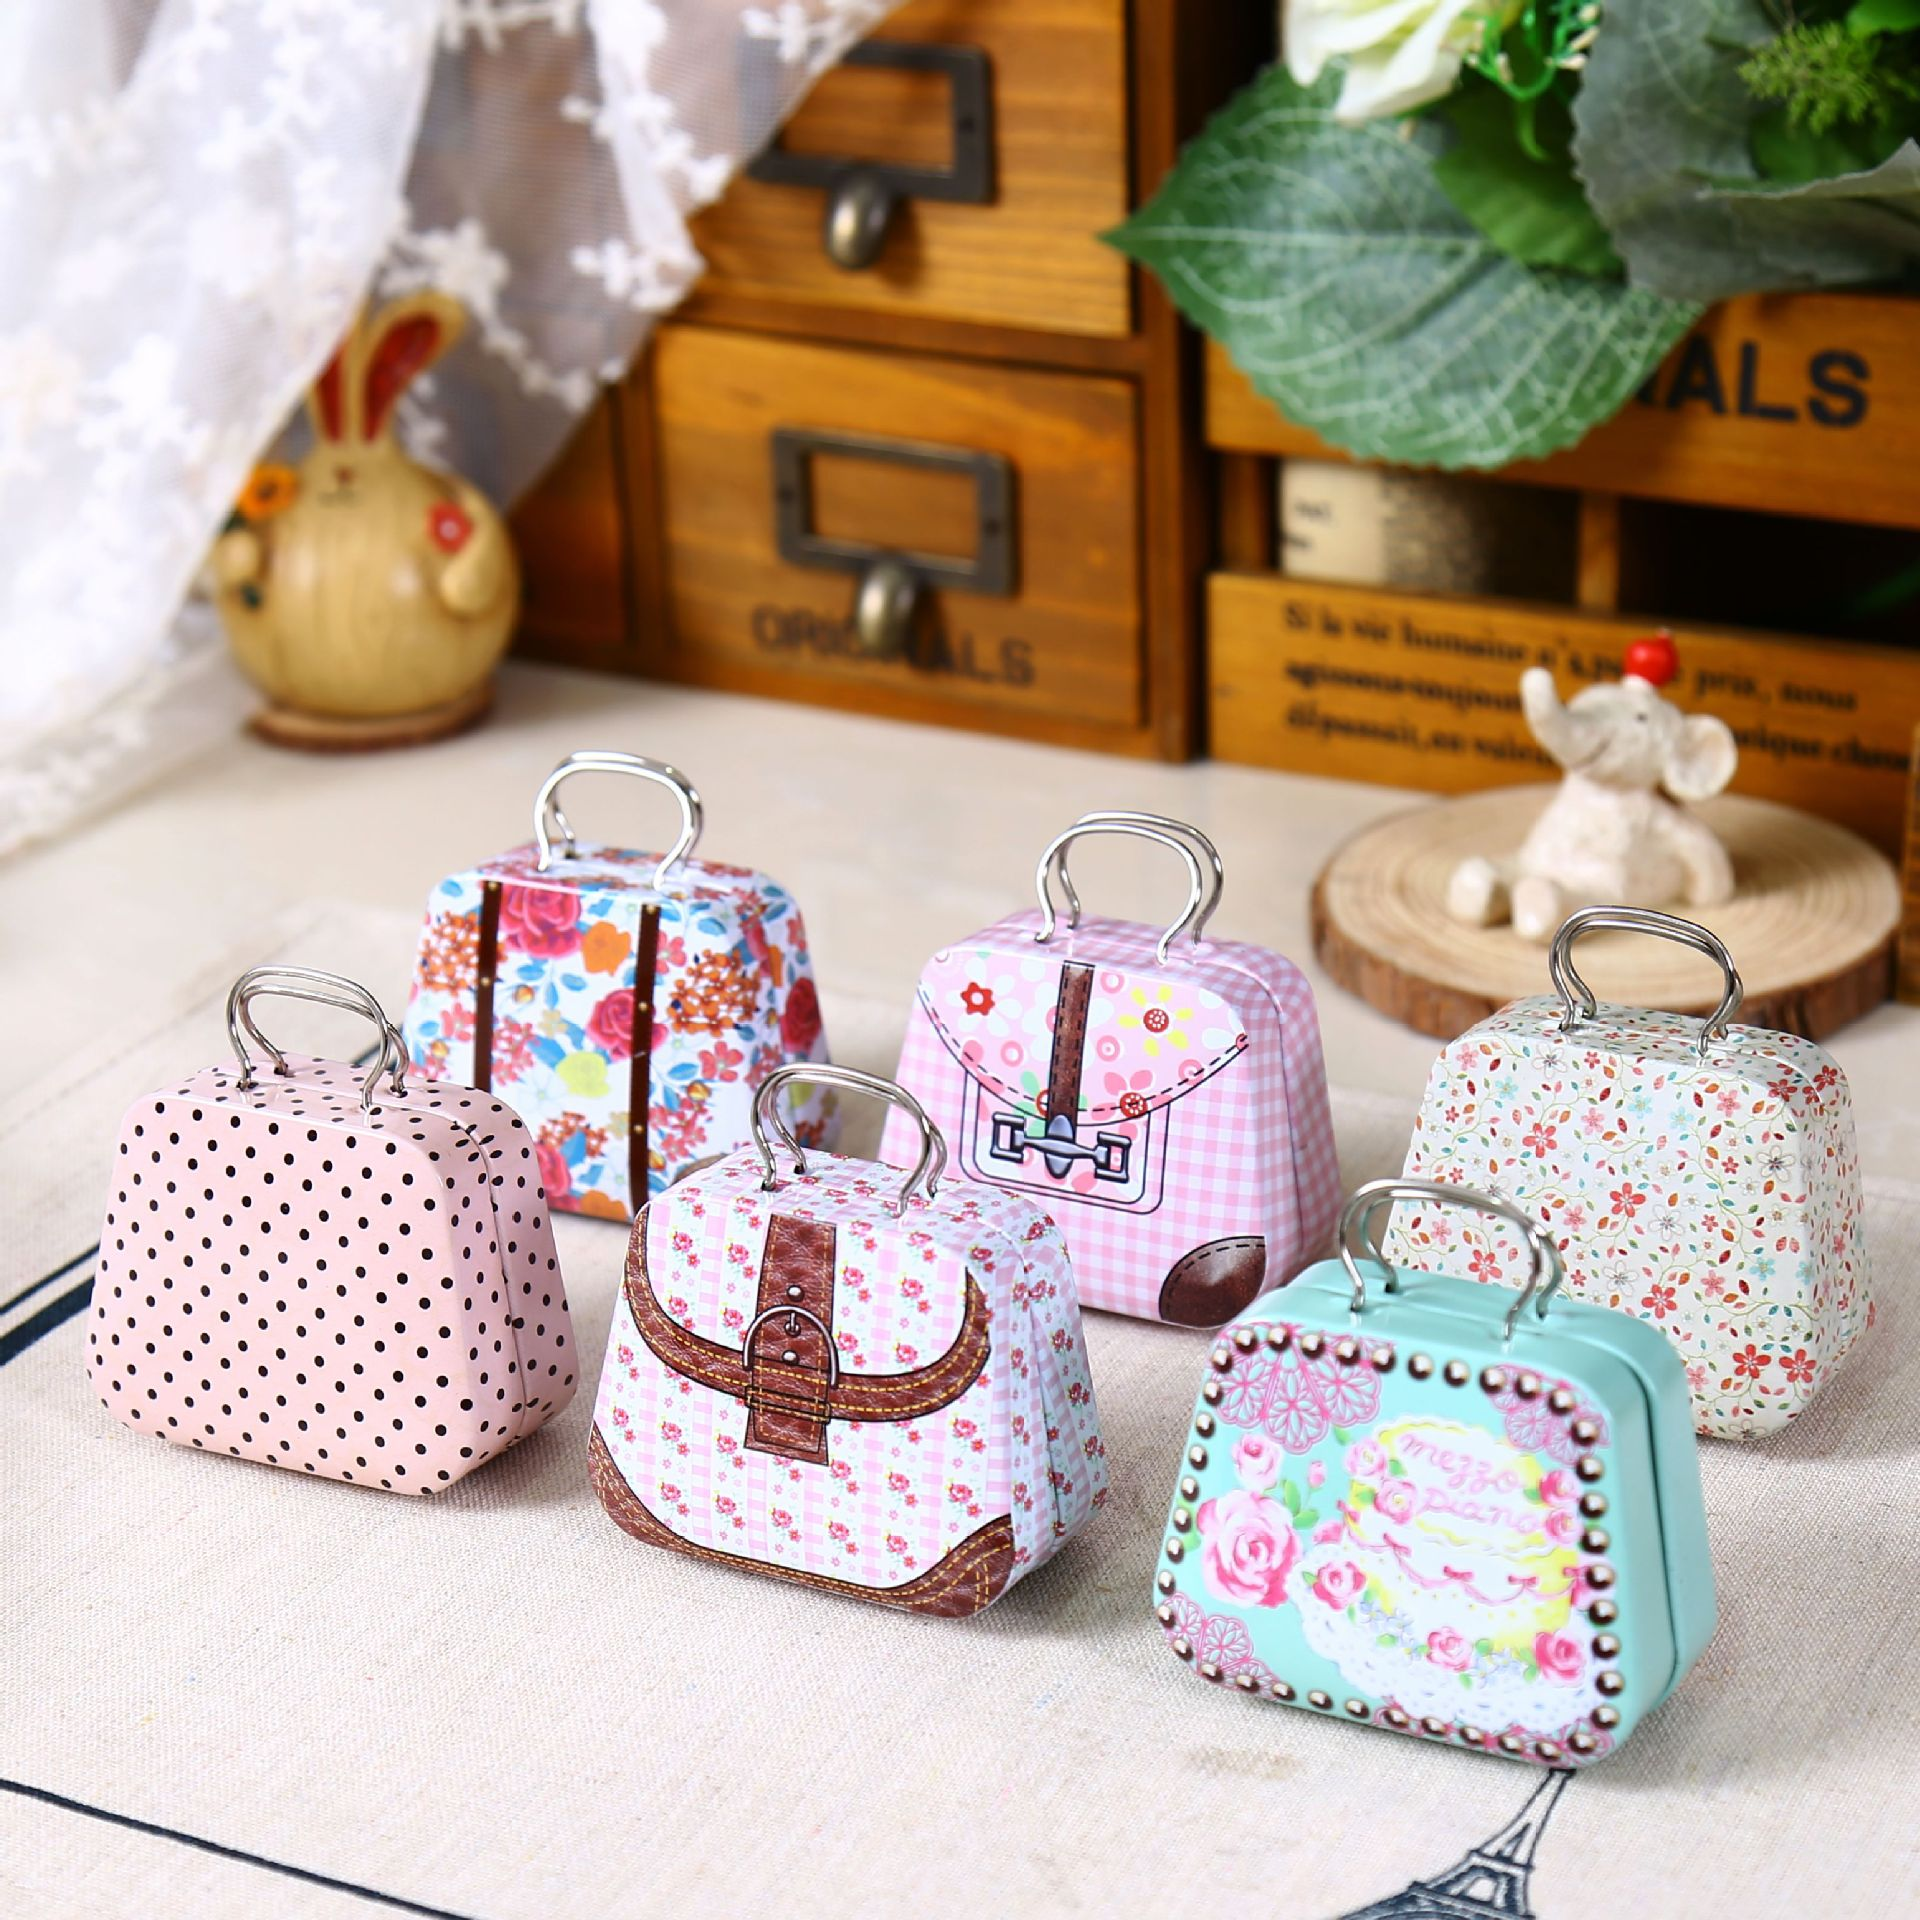 AliExpress.com Product - Zakka Style Creative Mini Handbag Shaped Tin Storage Box Coin Organizer Earphone Can Wedding Candy Box 7*3.3*5.5cm 1 Piece